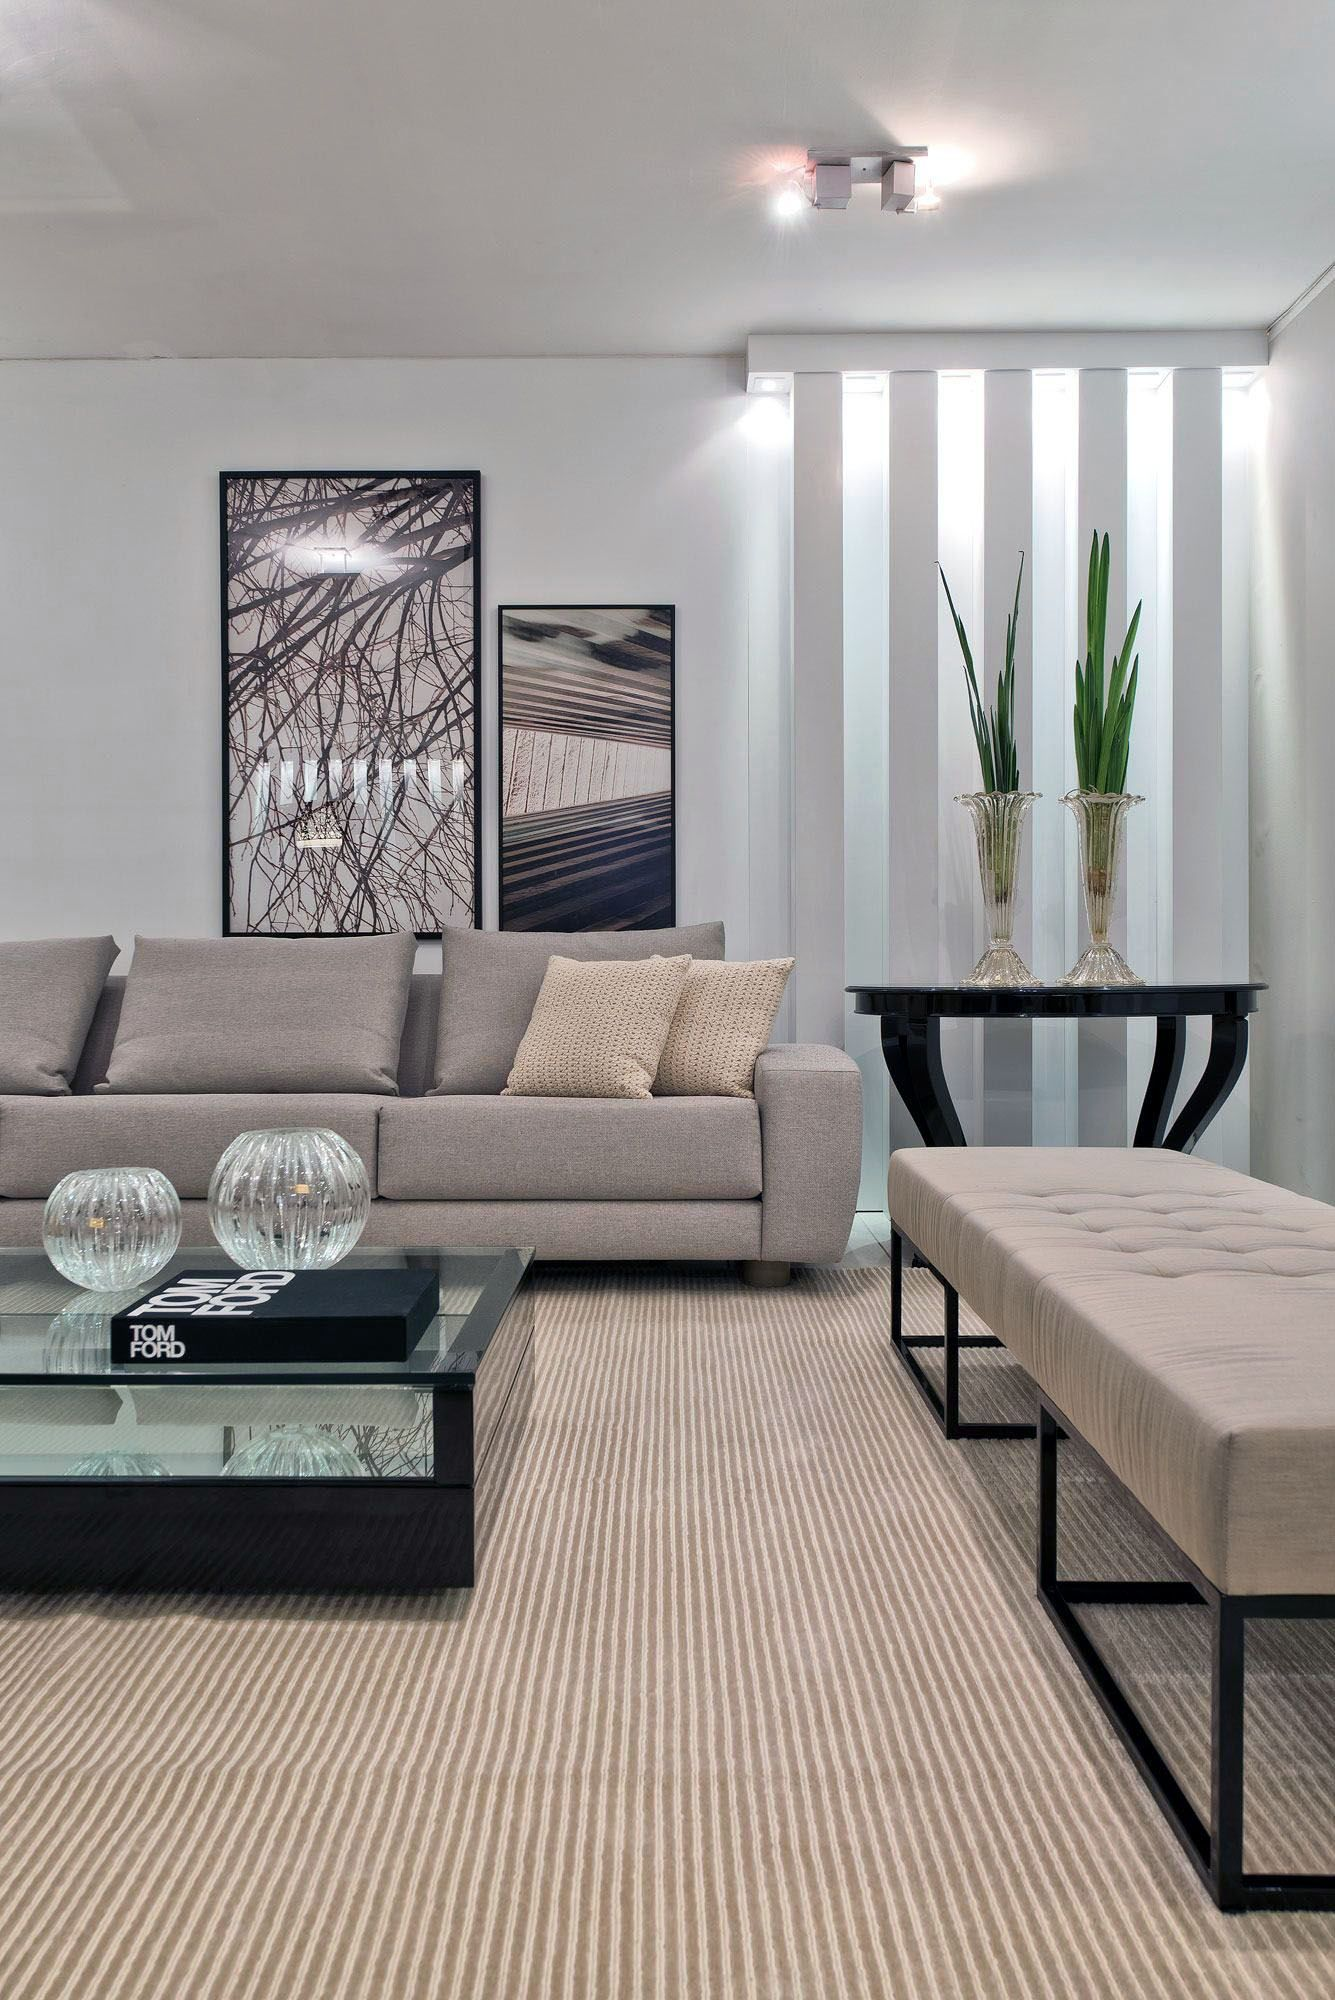 livingroom candidate the living room candidate affordable living room decor